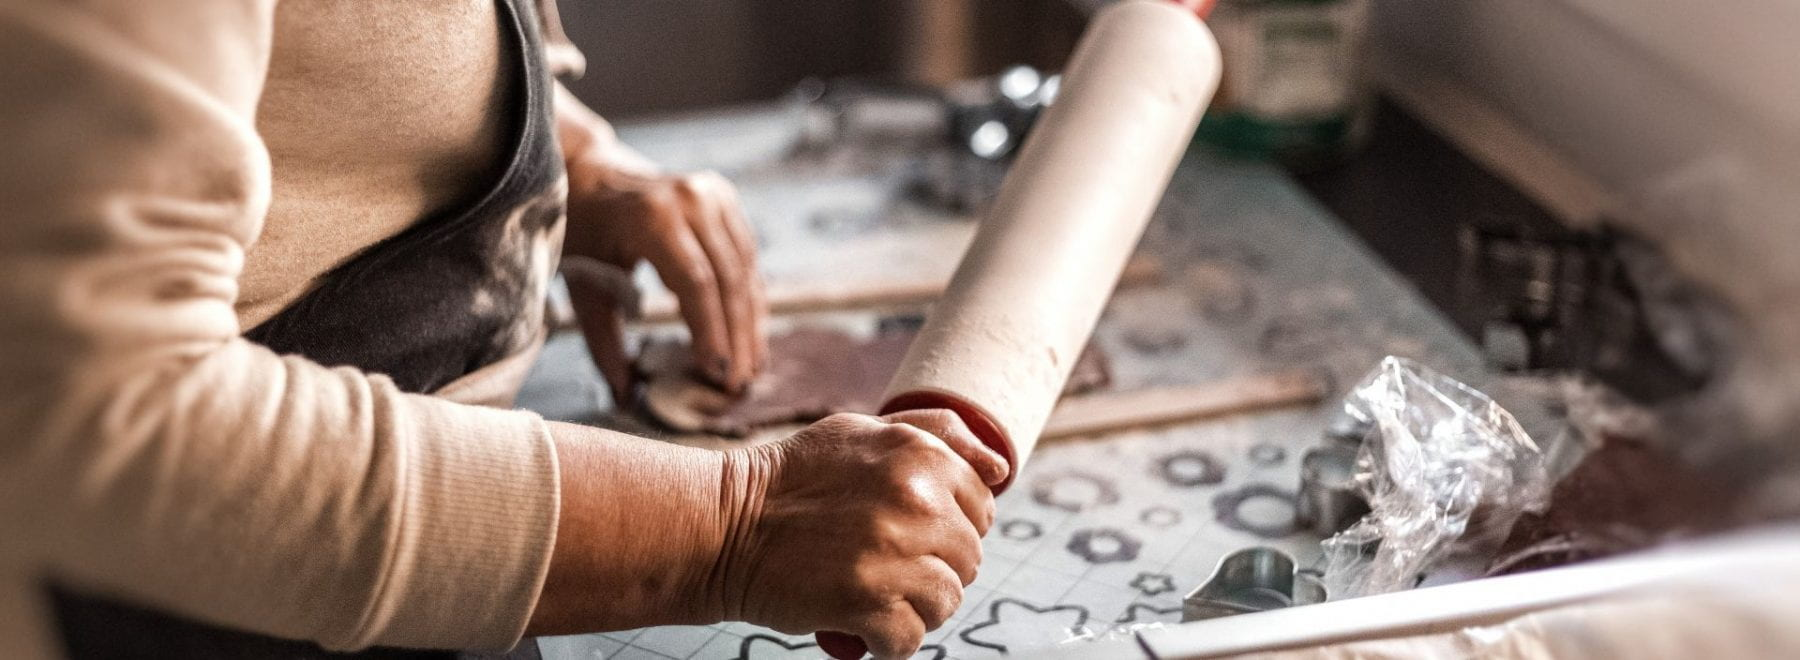 Close up shot of woman holding a rolling pin over a tray of dough